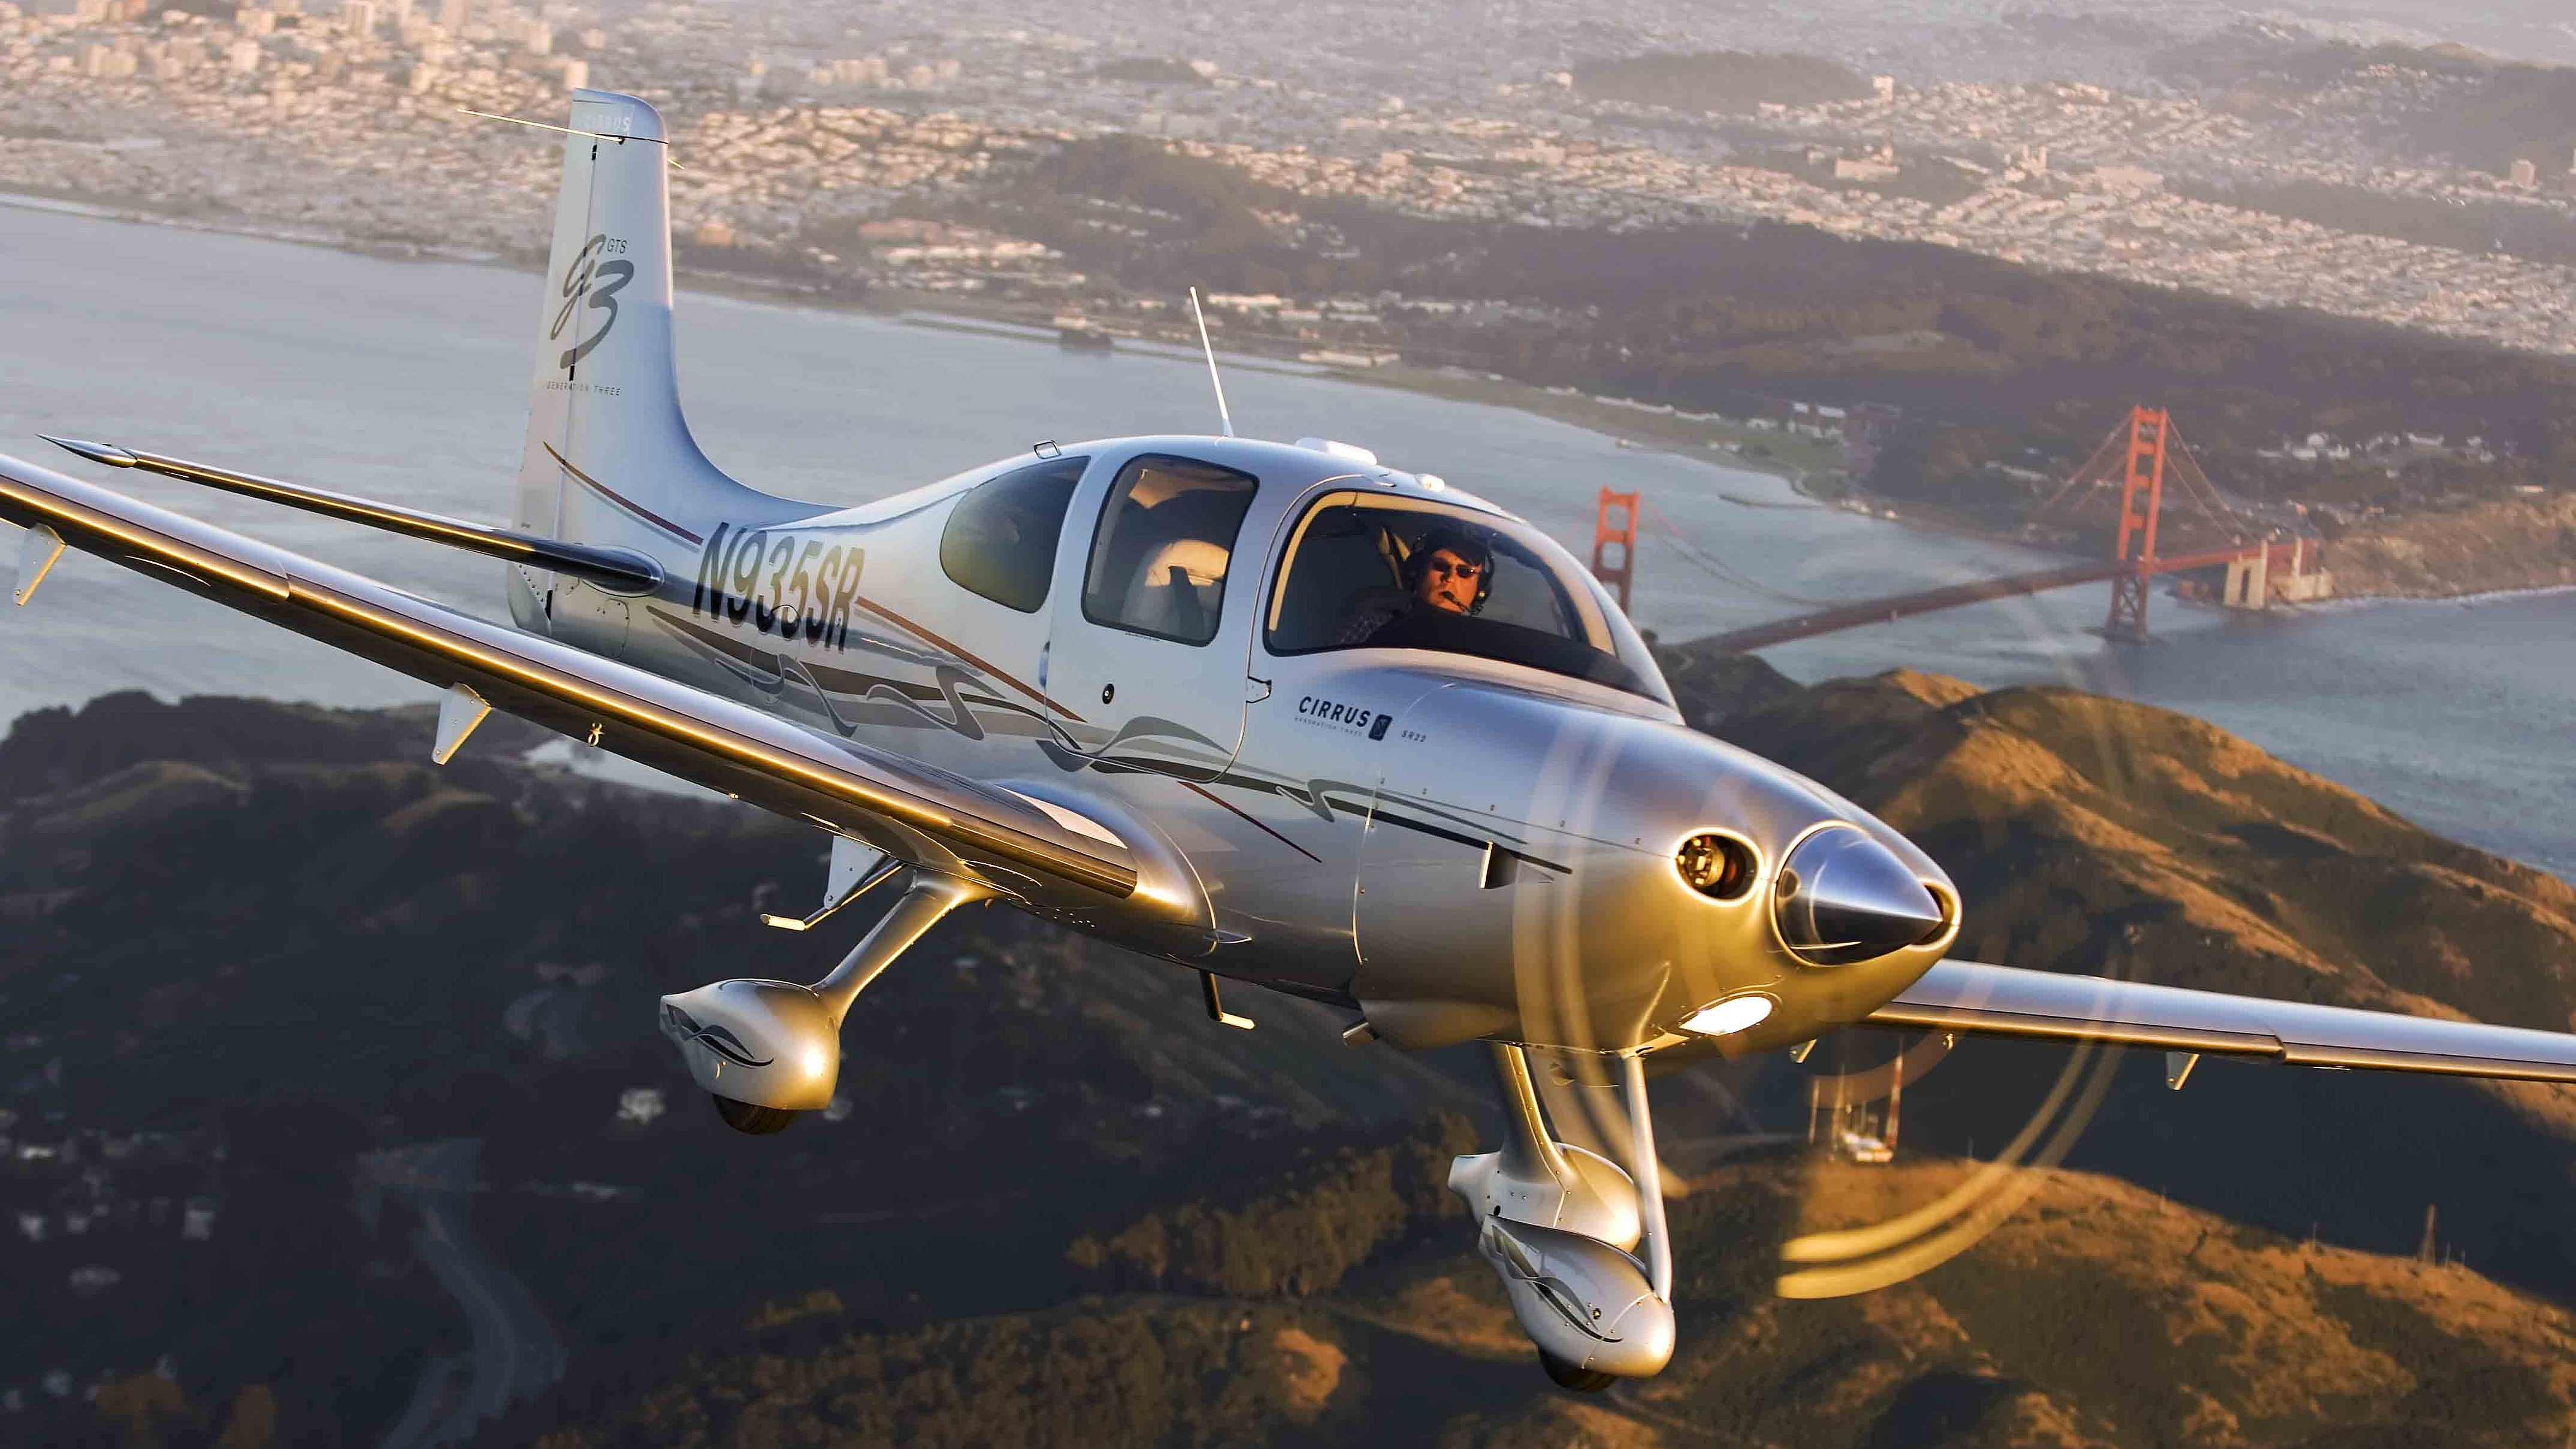 2 Cirrus Sr22 Hd Wallpapers Background Images